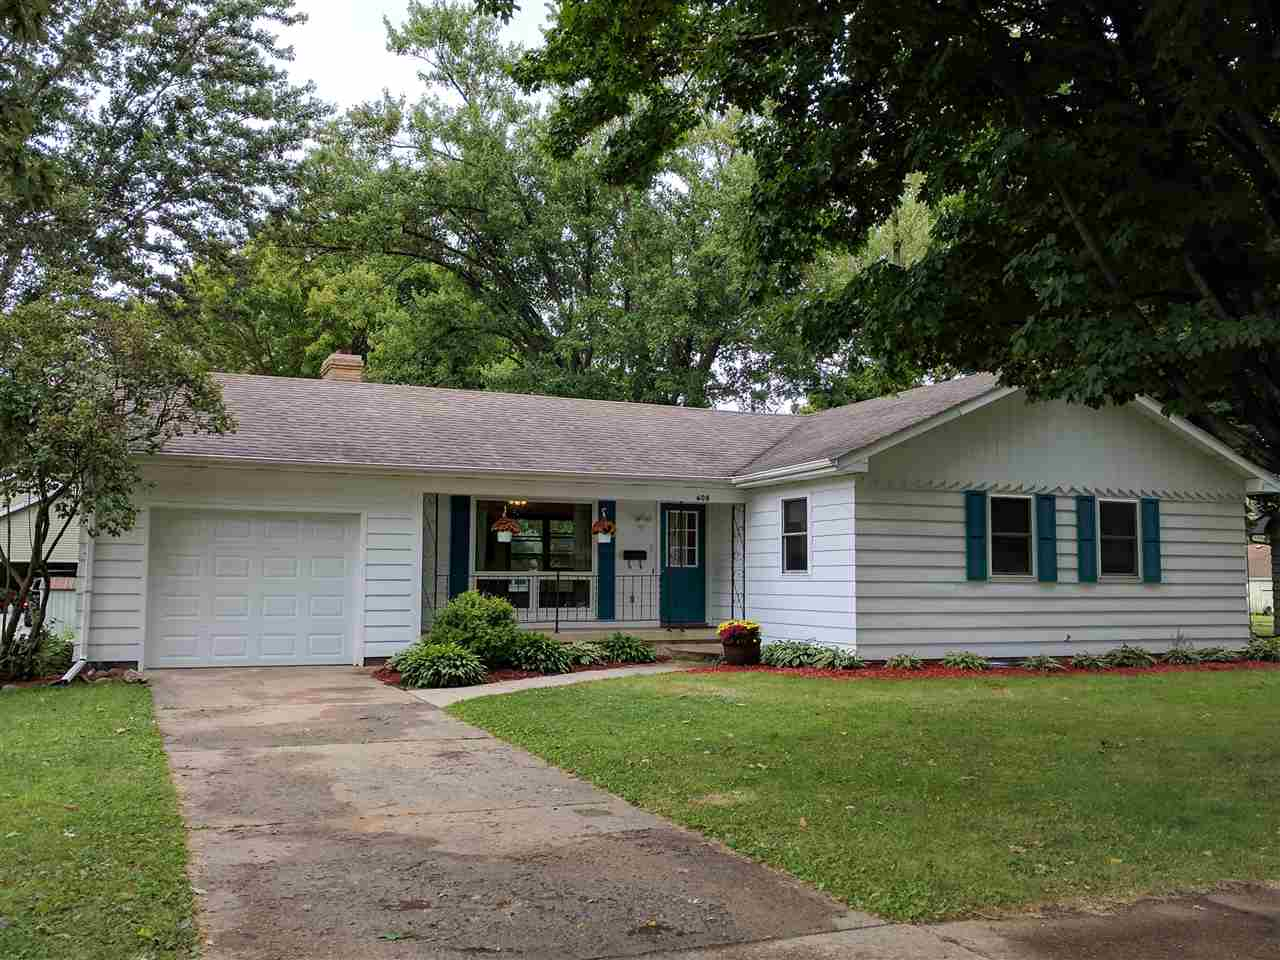 608 Maple, Sauk City, WI 53583